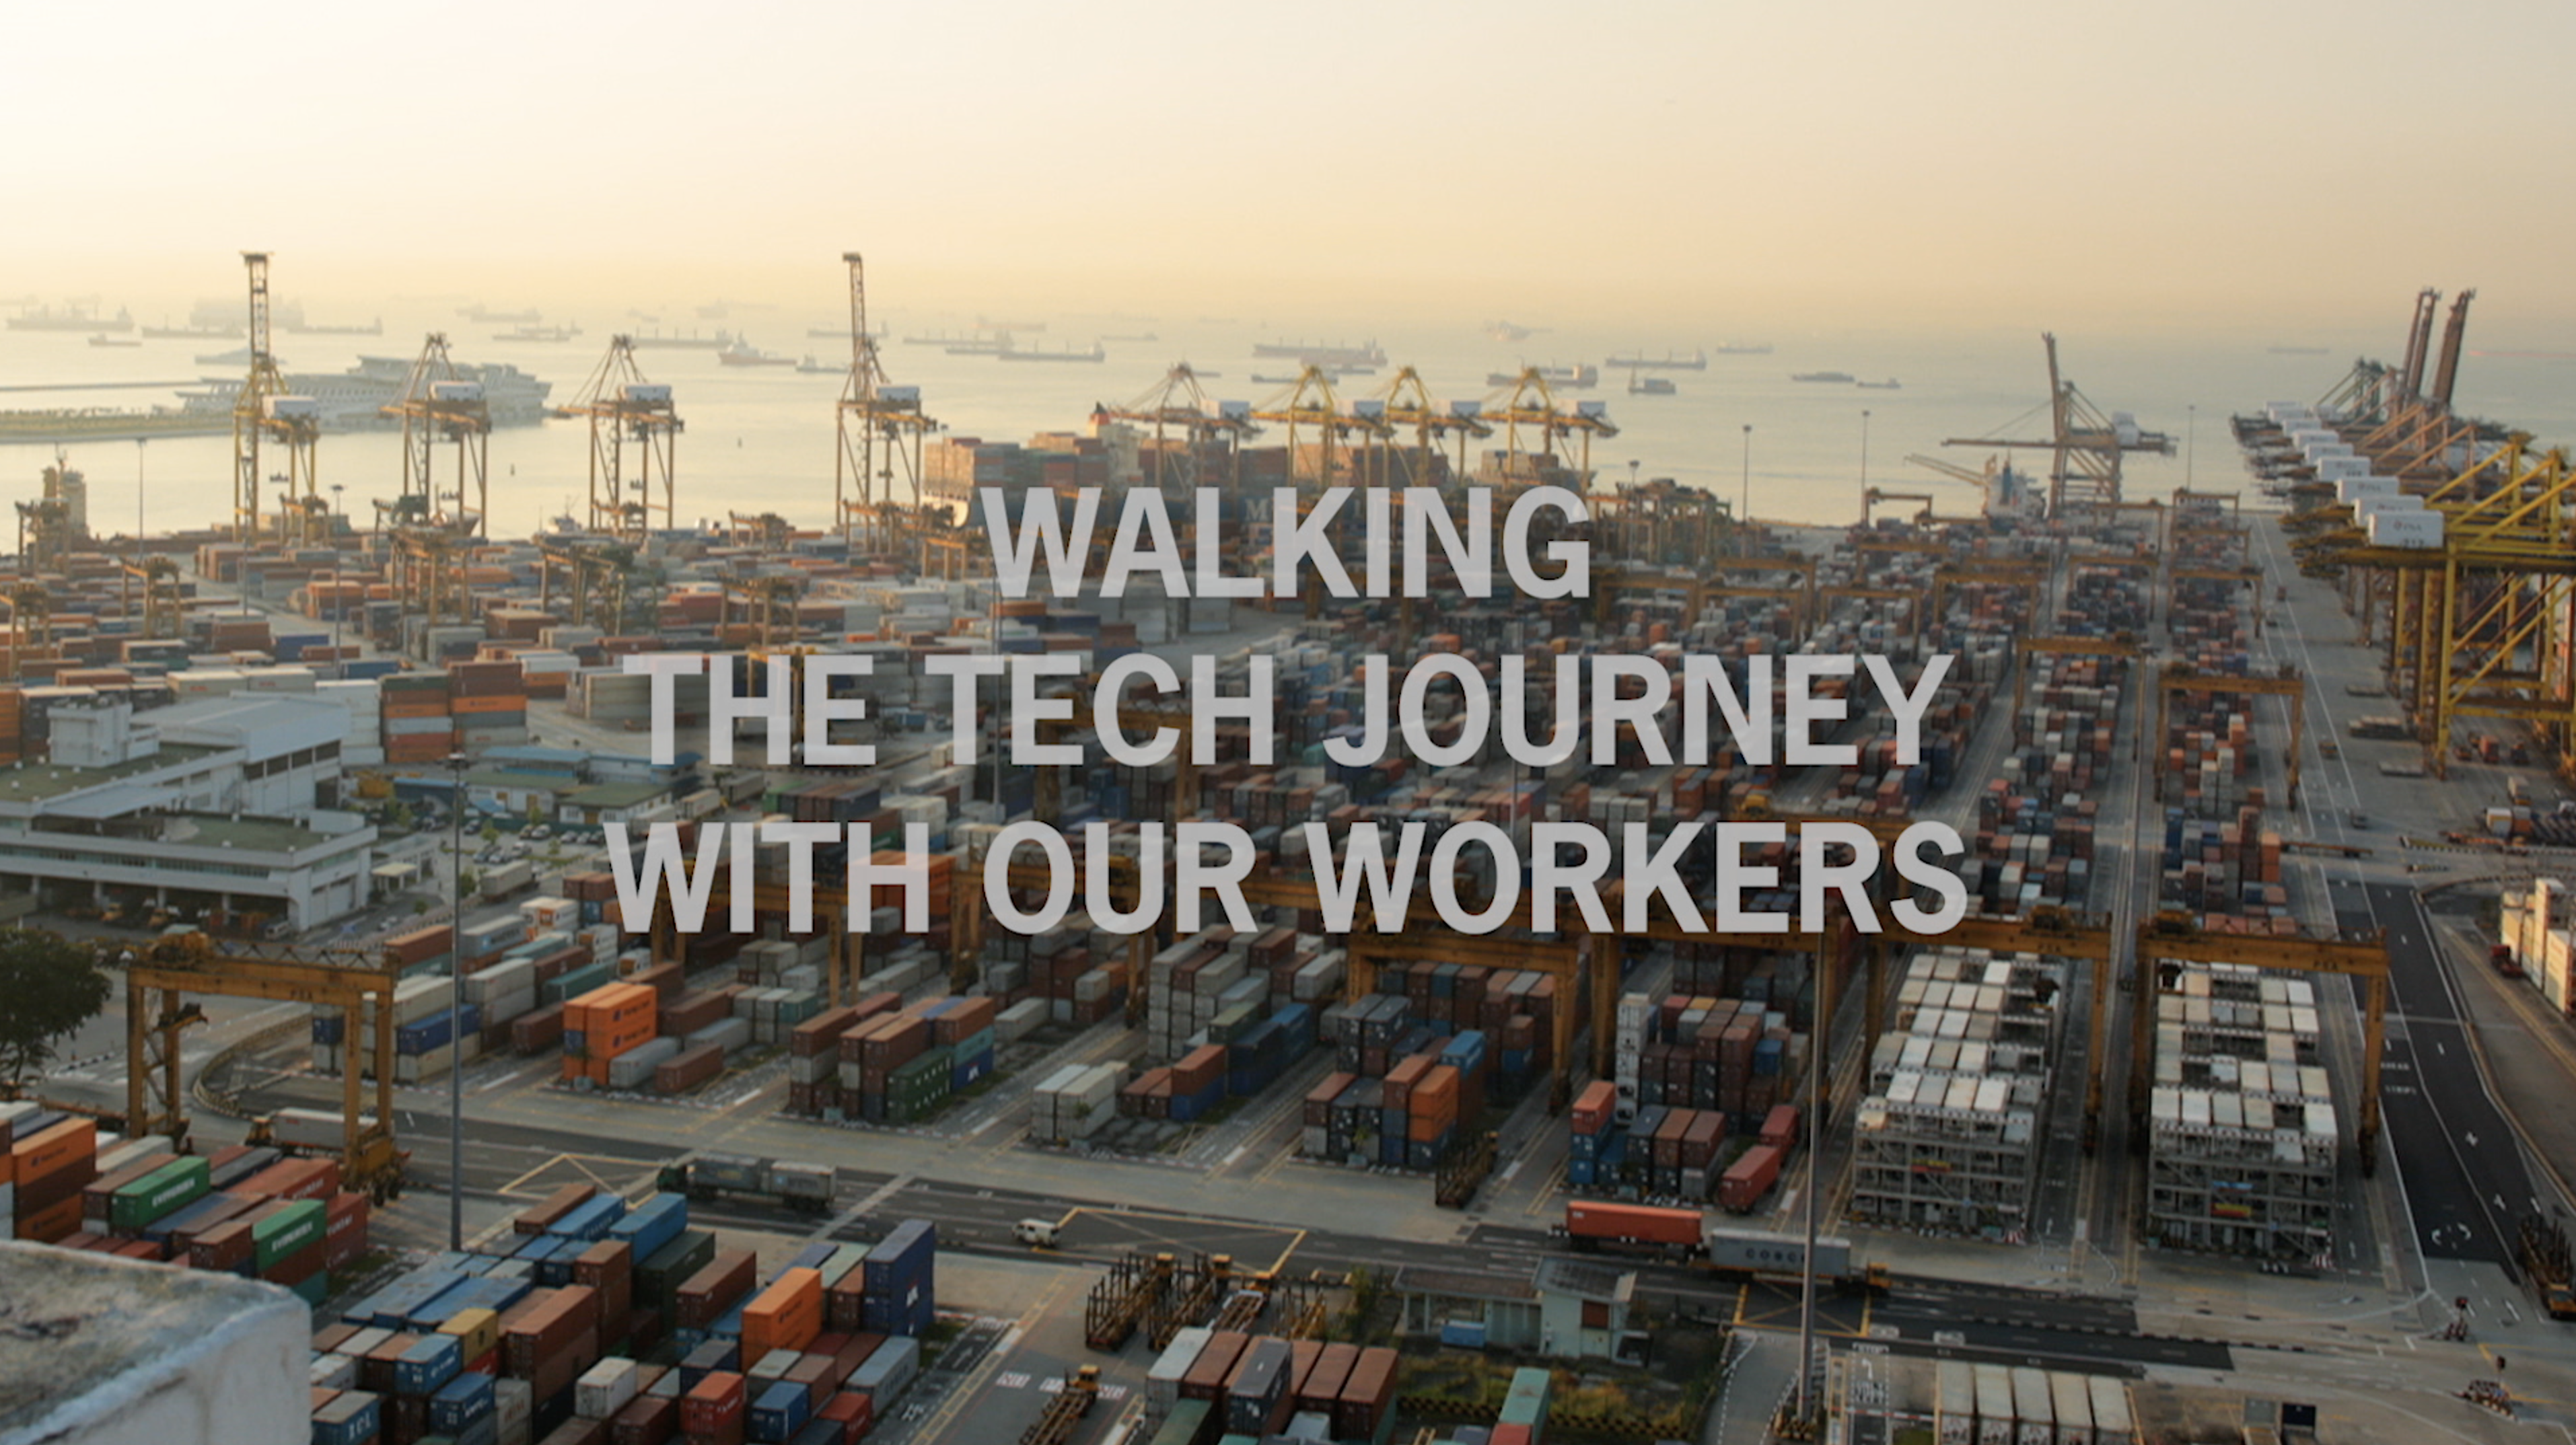 Walking The Tech Journey With Our Workers